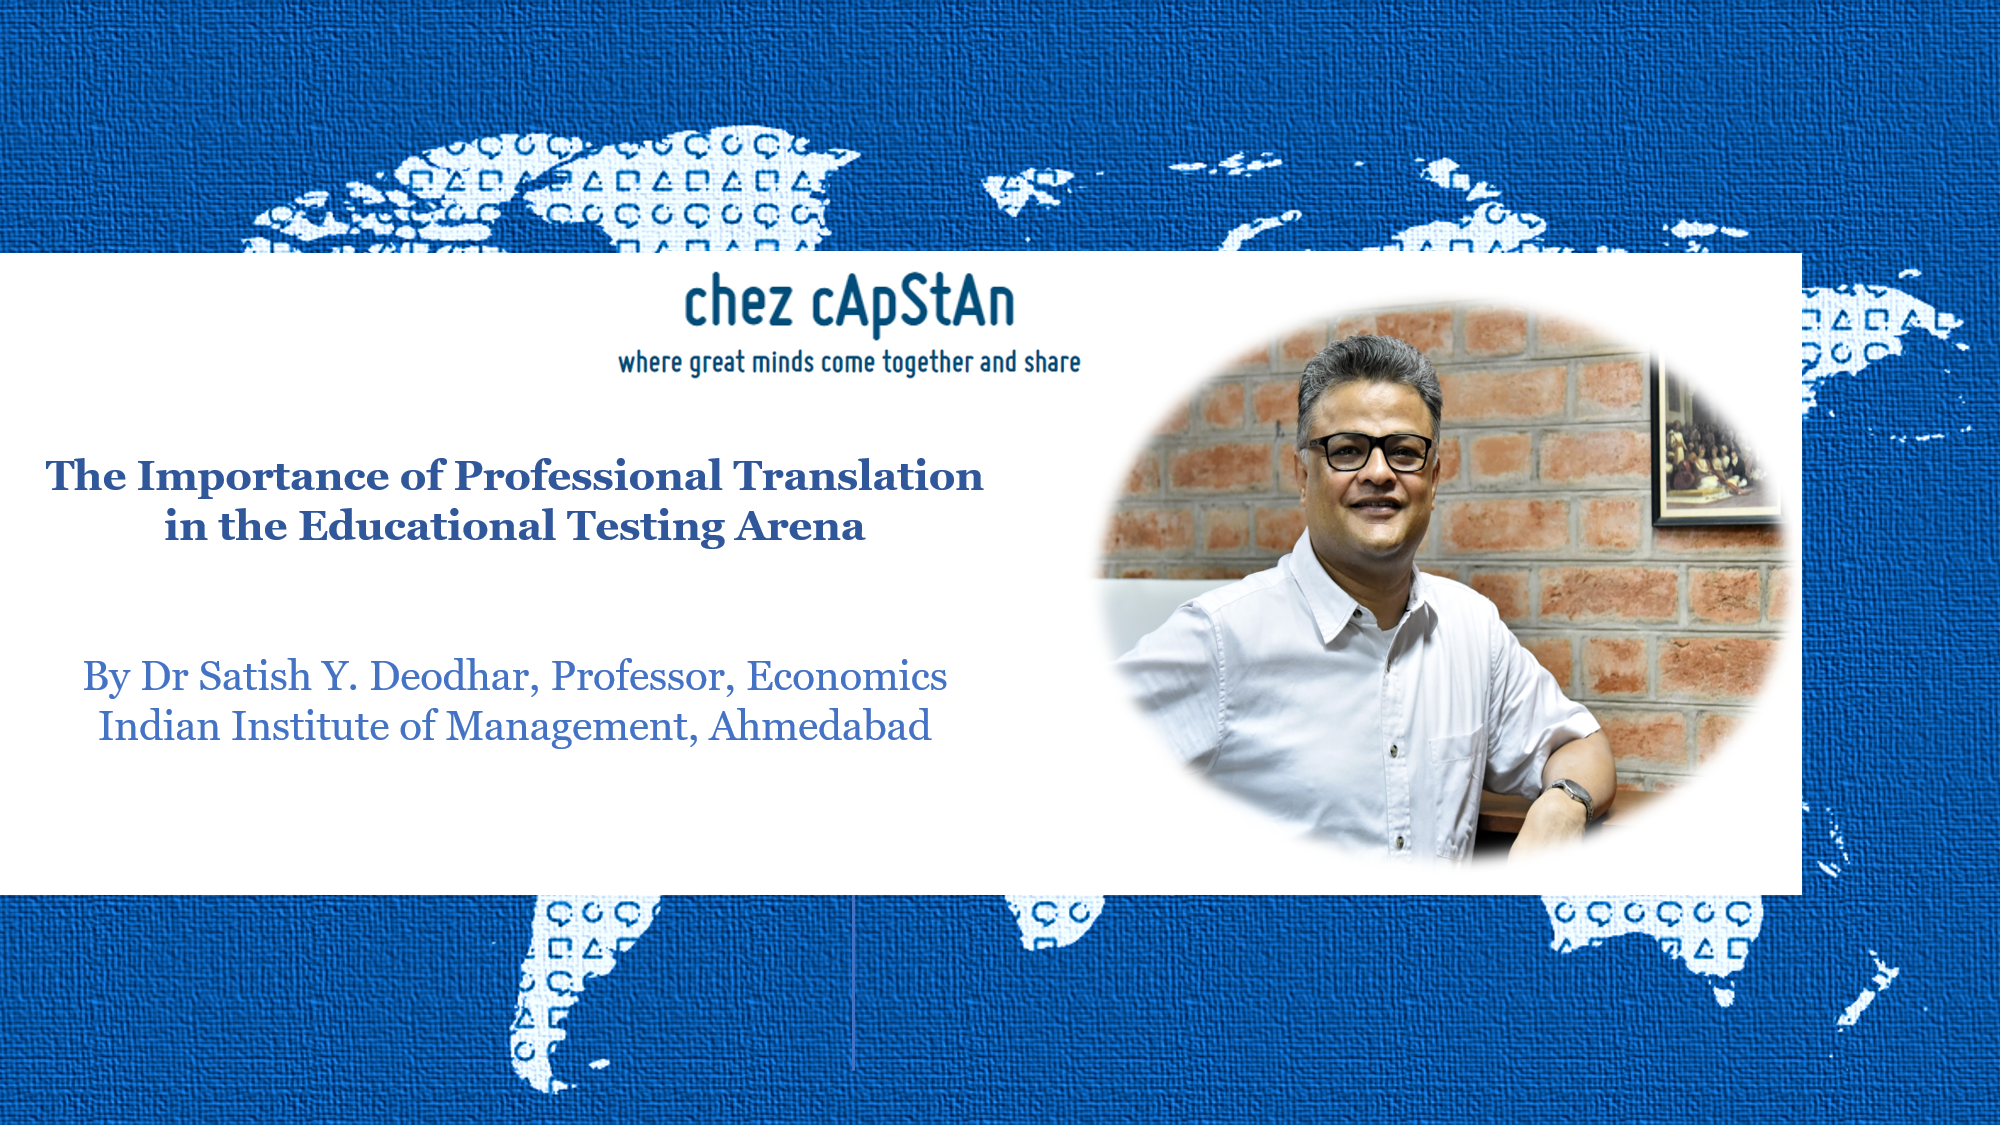 The Importance of Professional Translation in the Educational Testing Arena